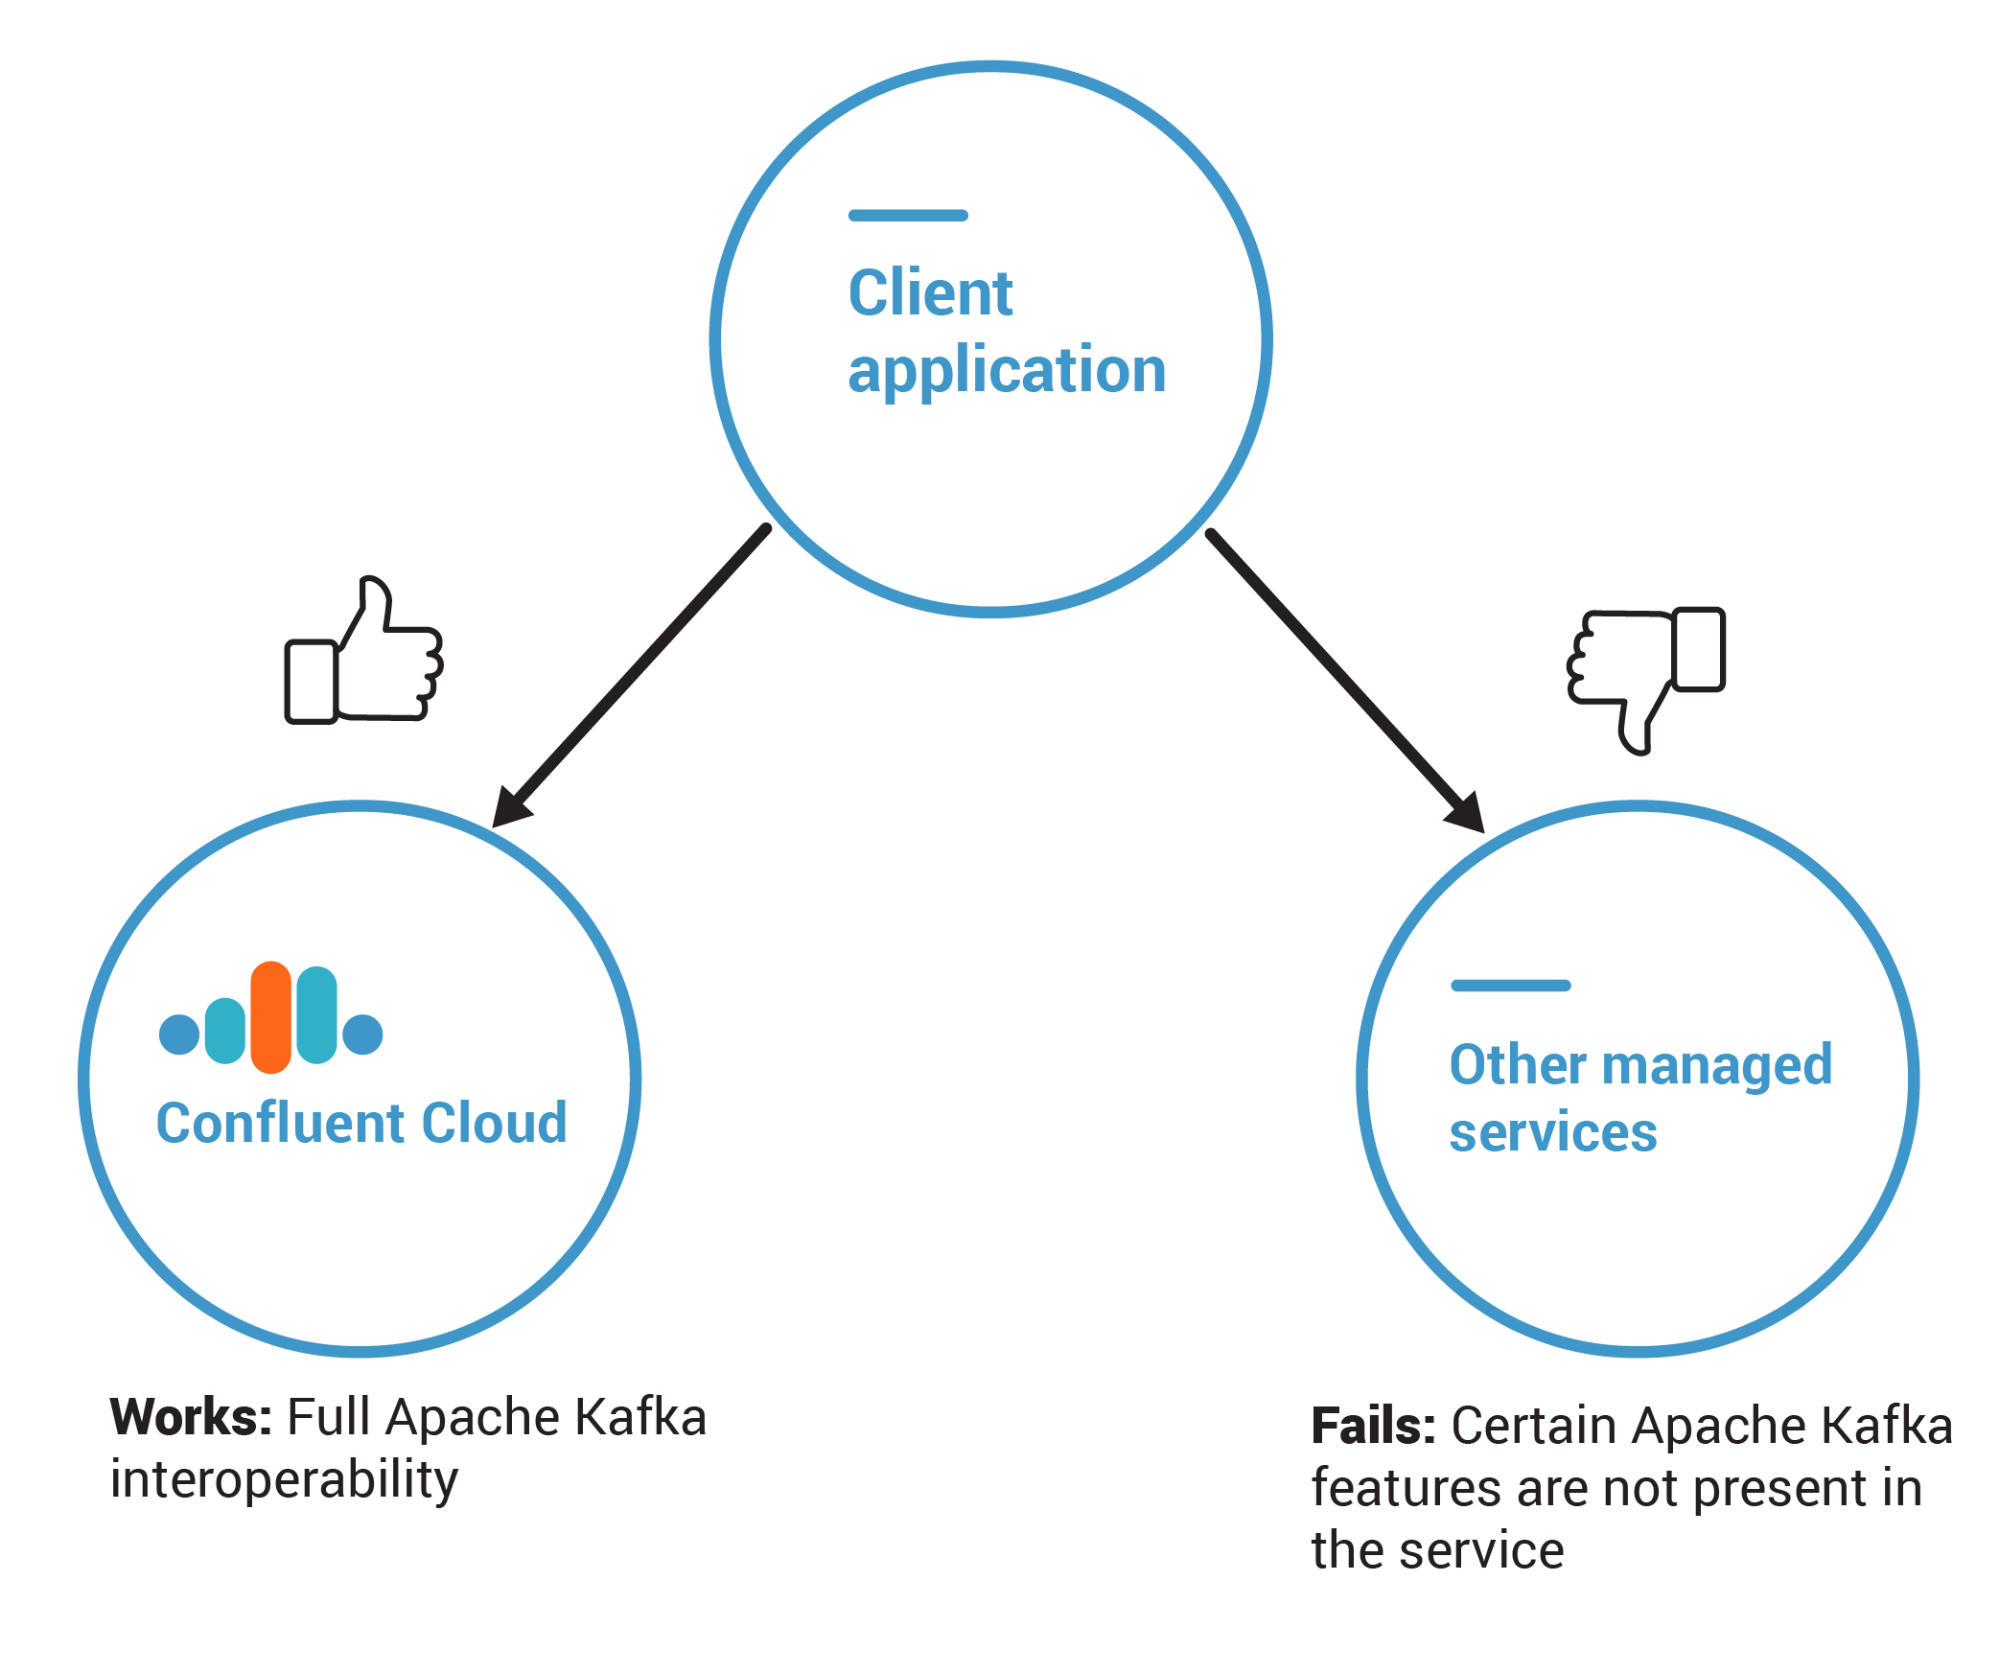 Client Applications ➝ Confluent Cloud | Other Managed Services